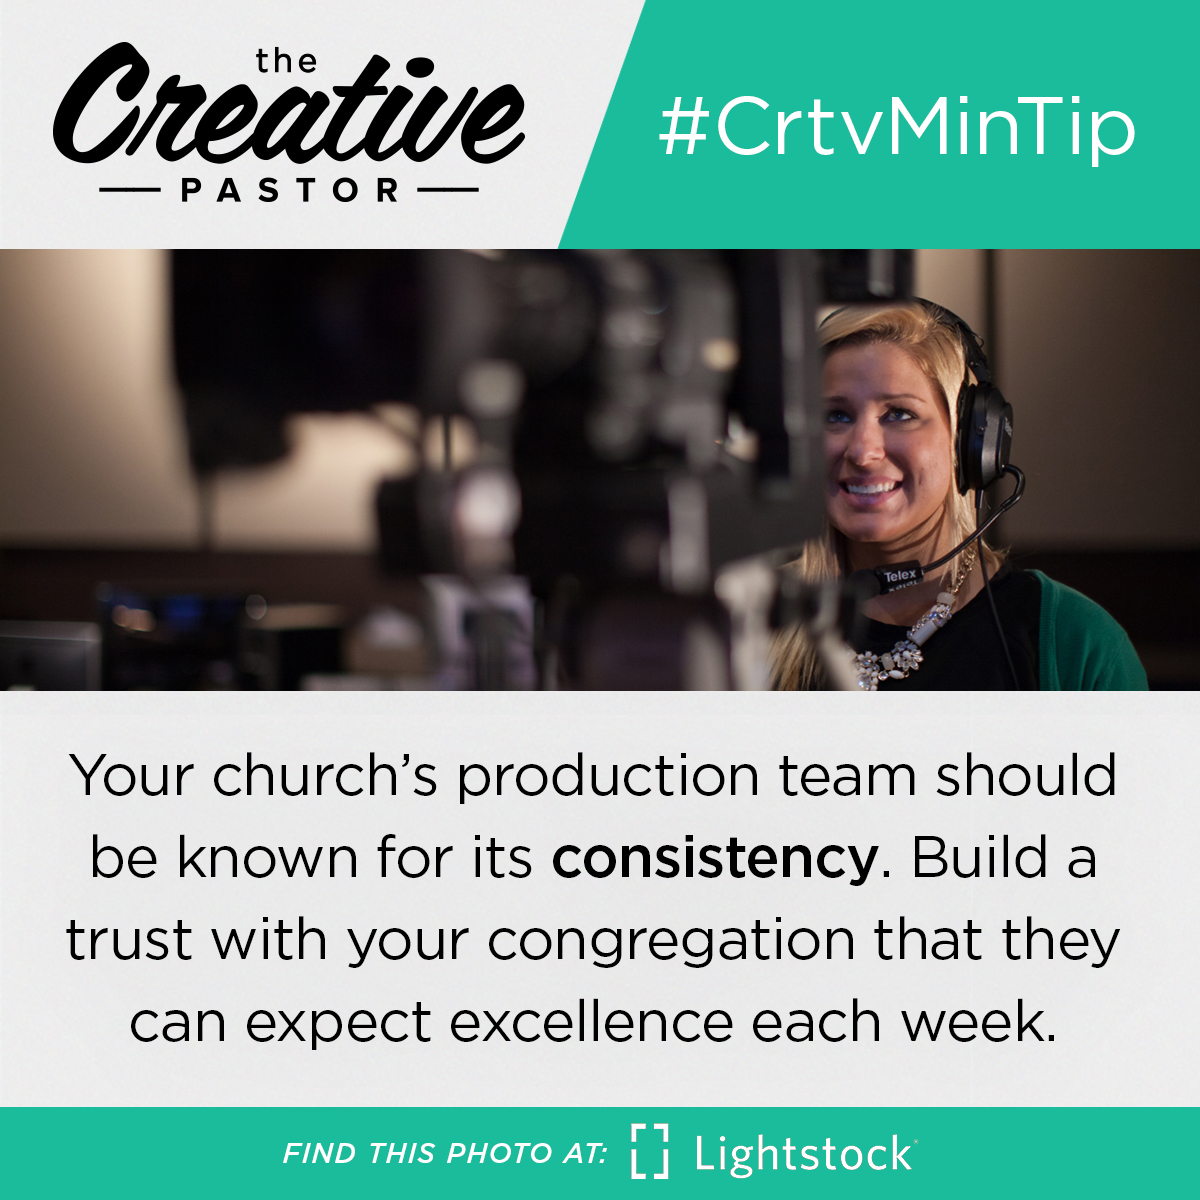 #CrtvMinTip: Your church's production team should be known for its consistency. Build a trust with your congregation that they can expect excellence each week.